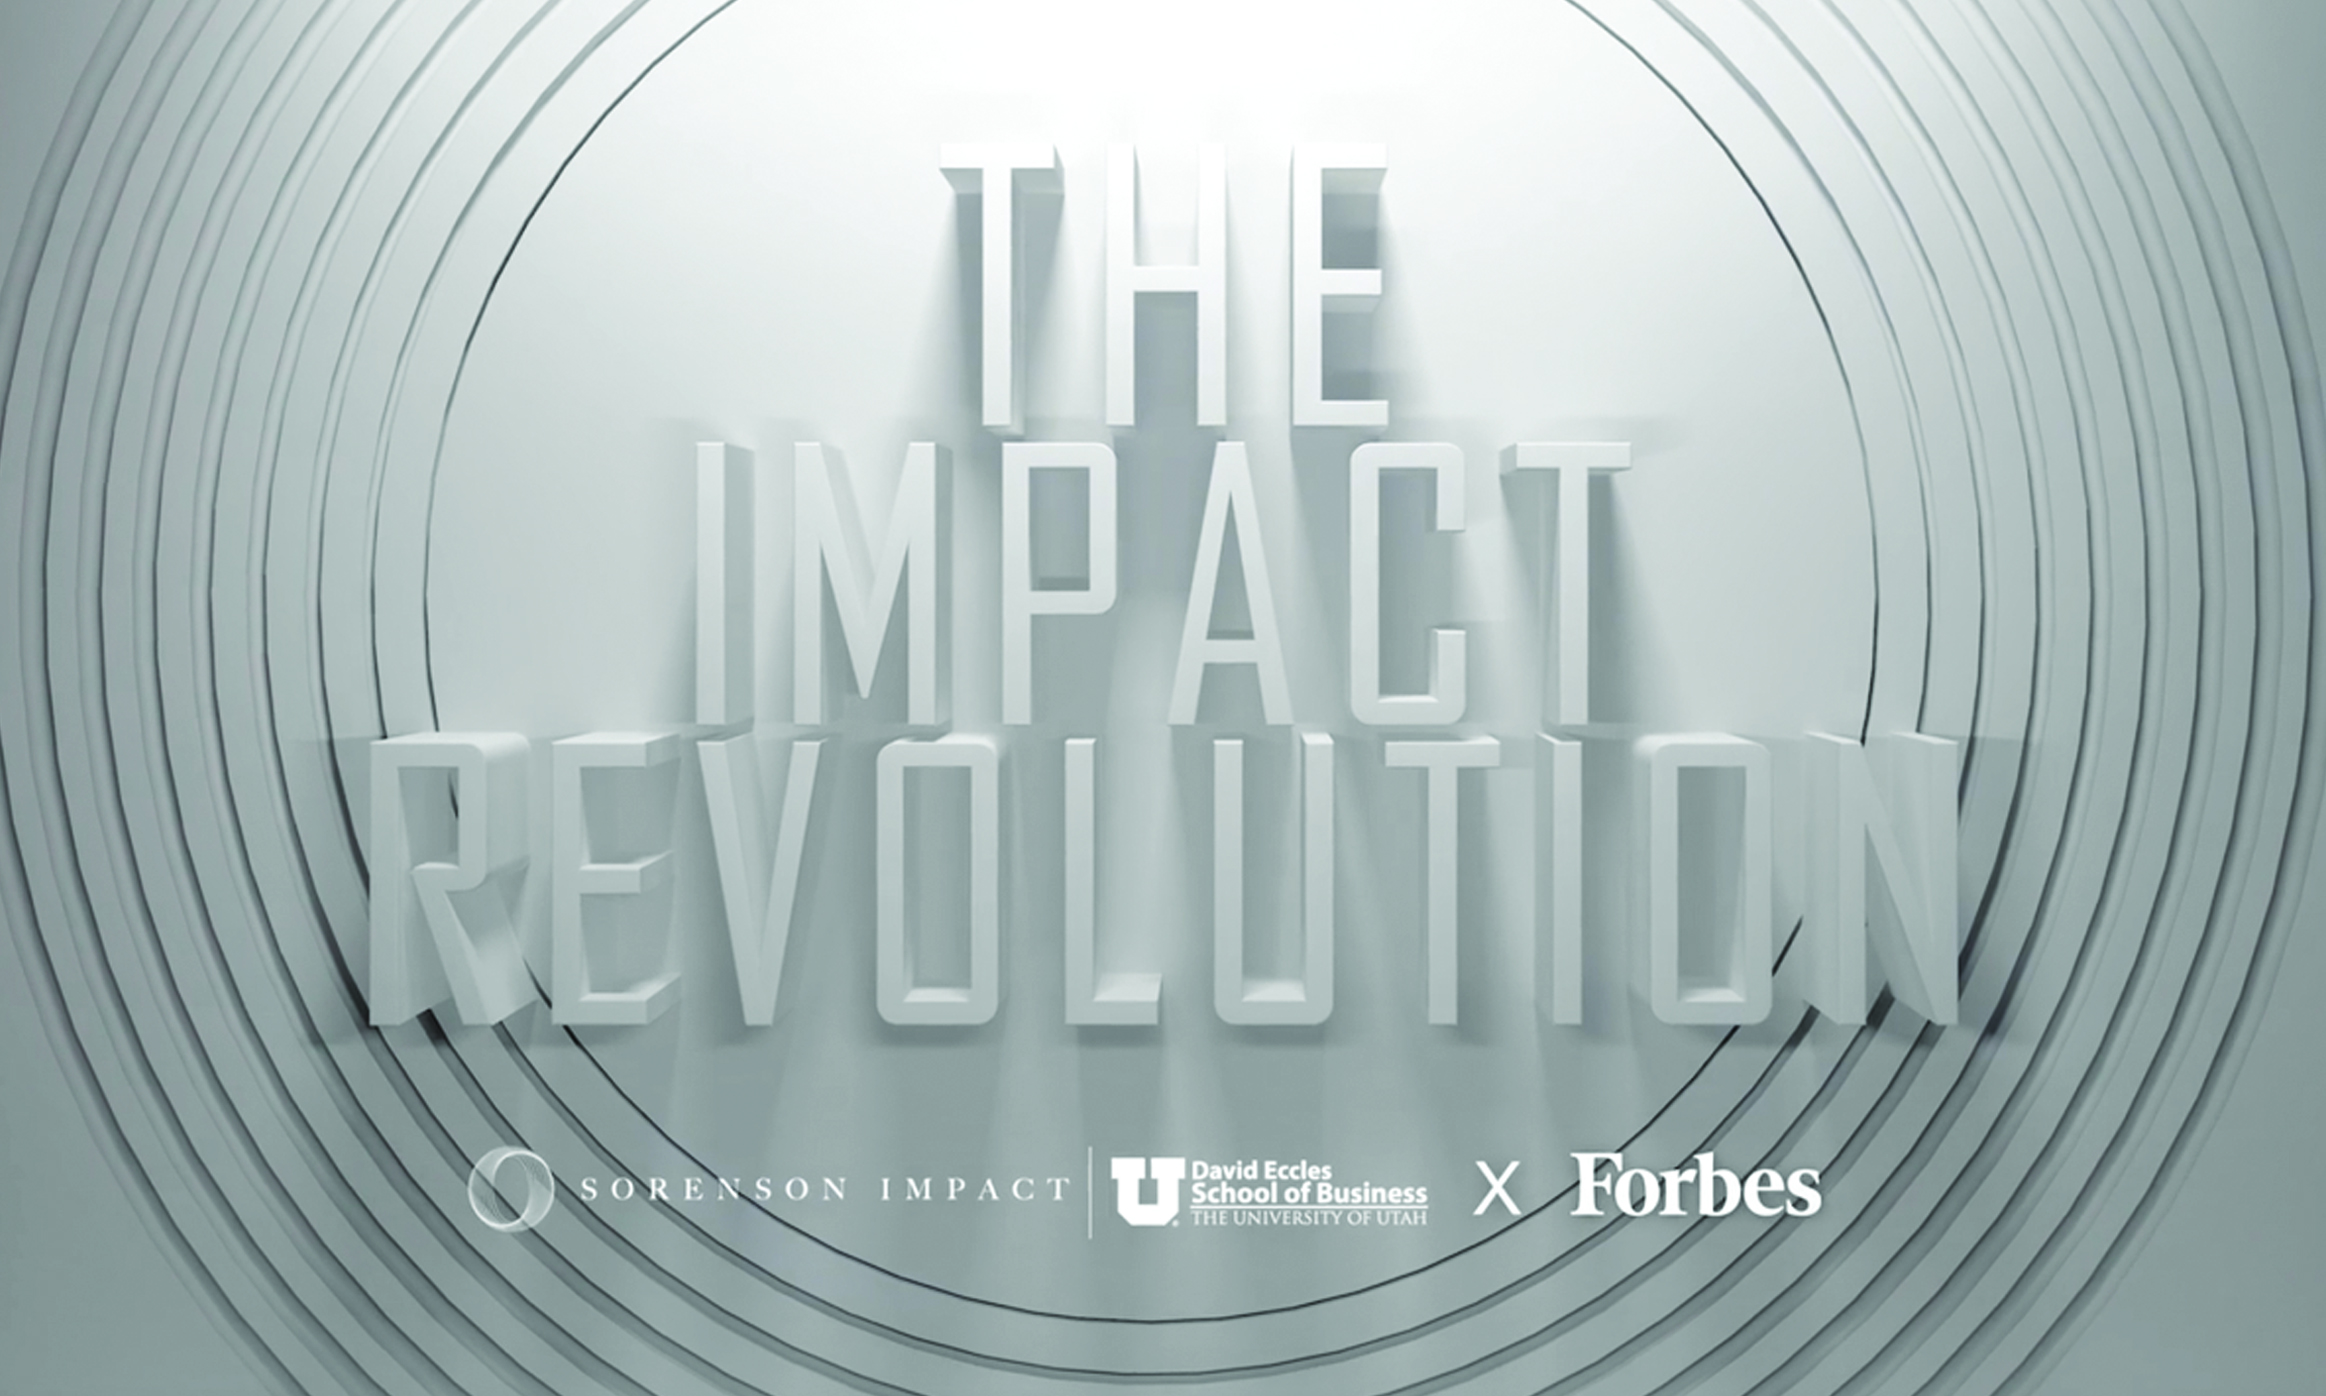 impact-revolution-cover-image-sorenson-impact-david-eccles-school-of-business-forbes.jpg